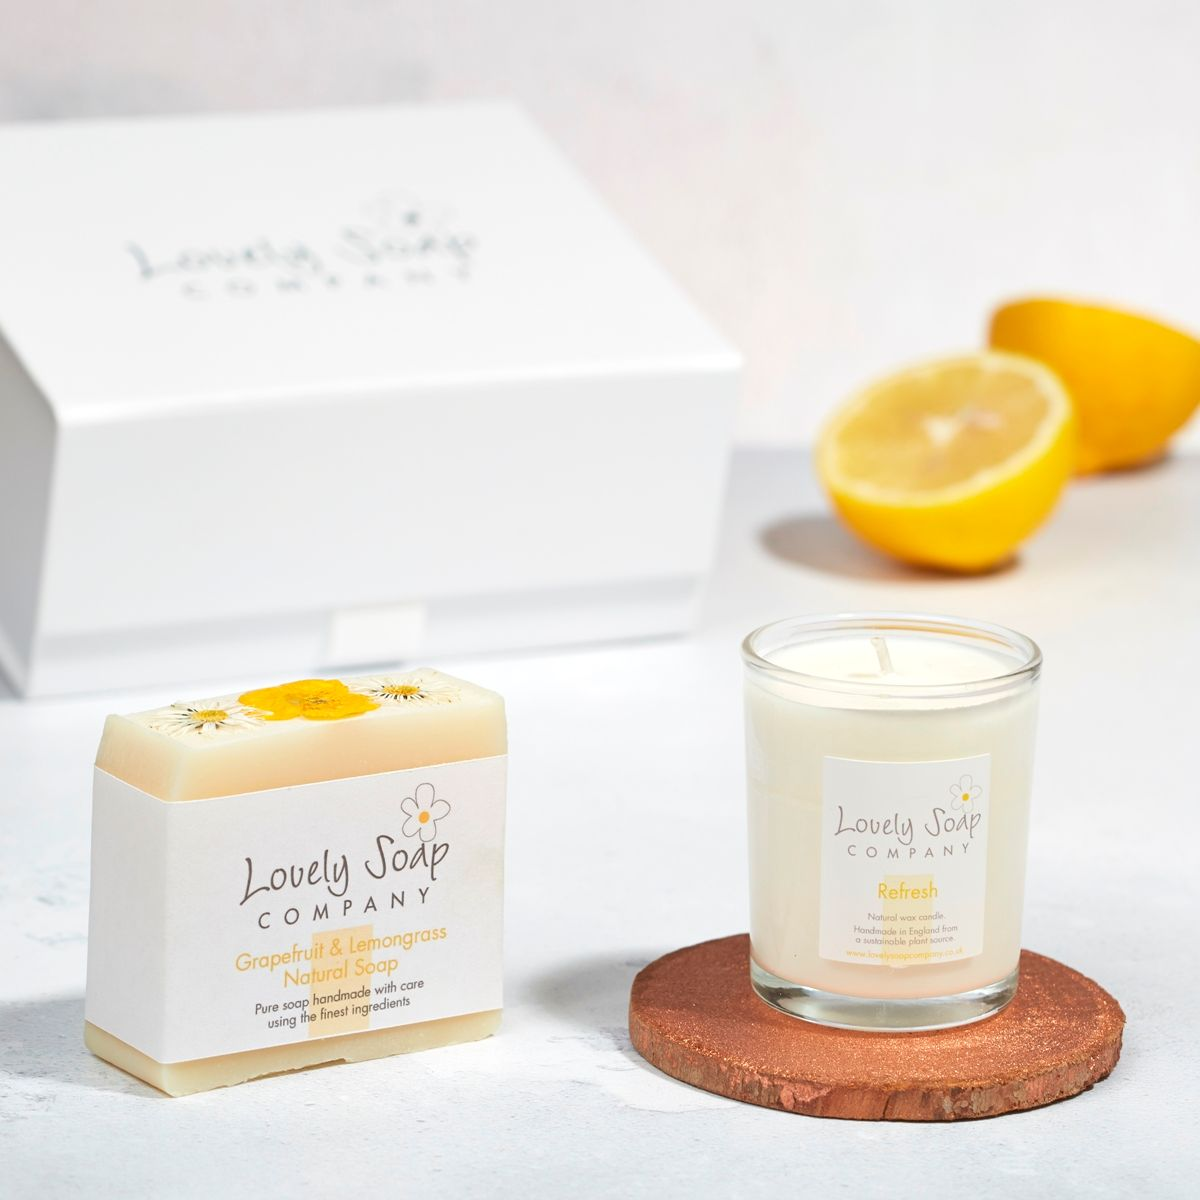 citrus thank you bath gift set by Lovely Soap Company